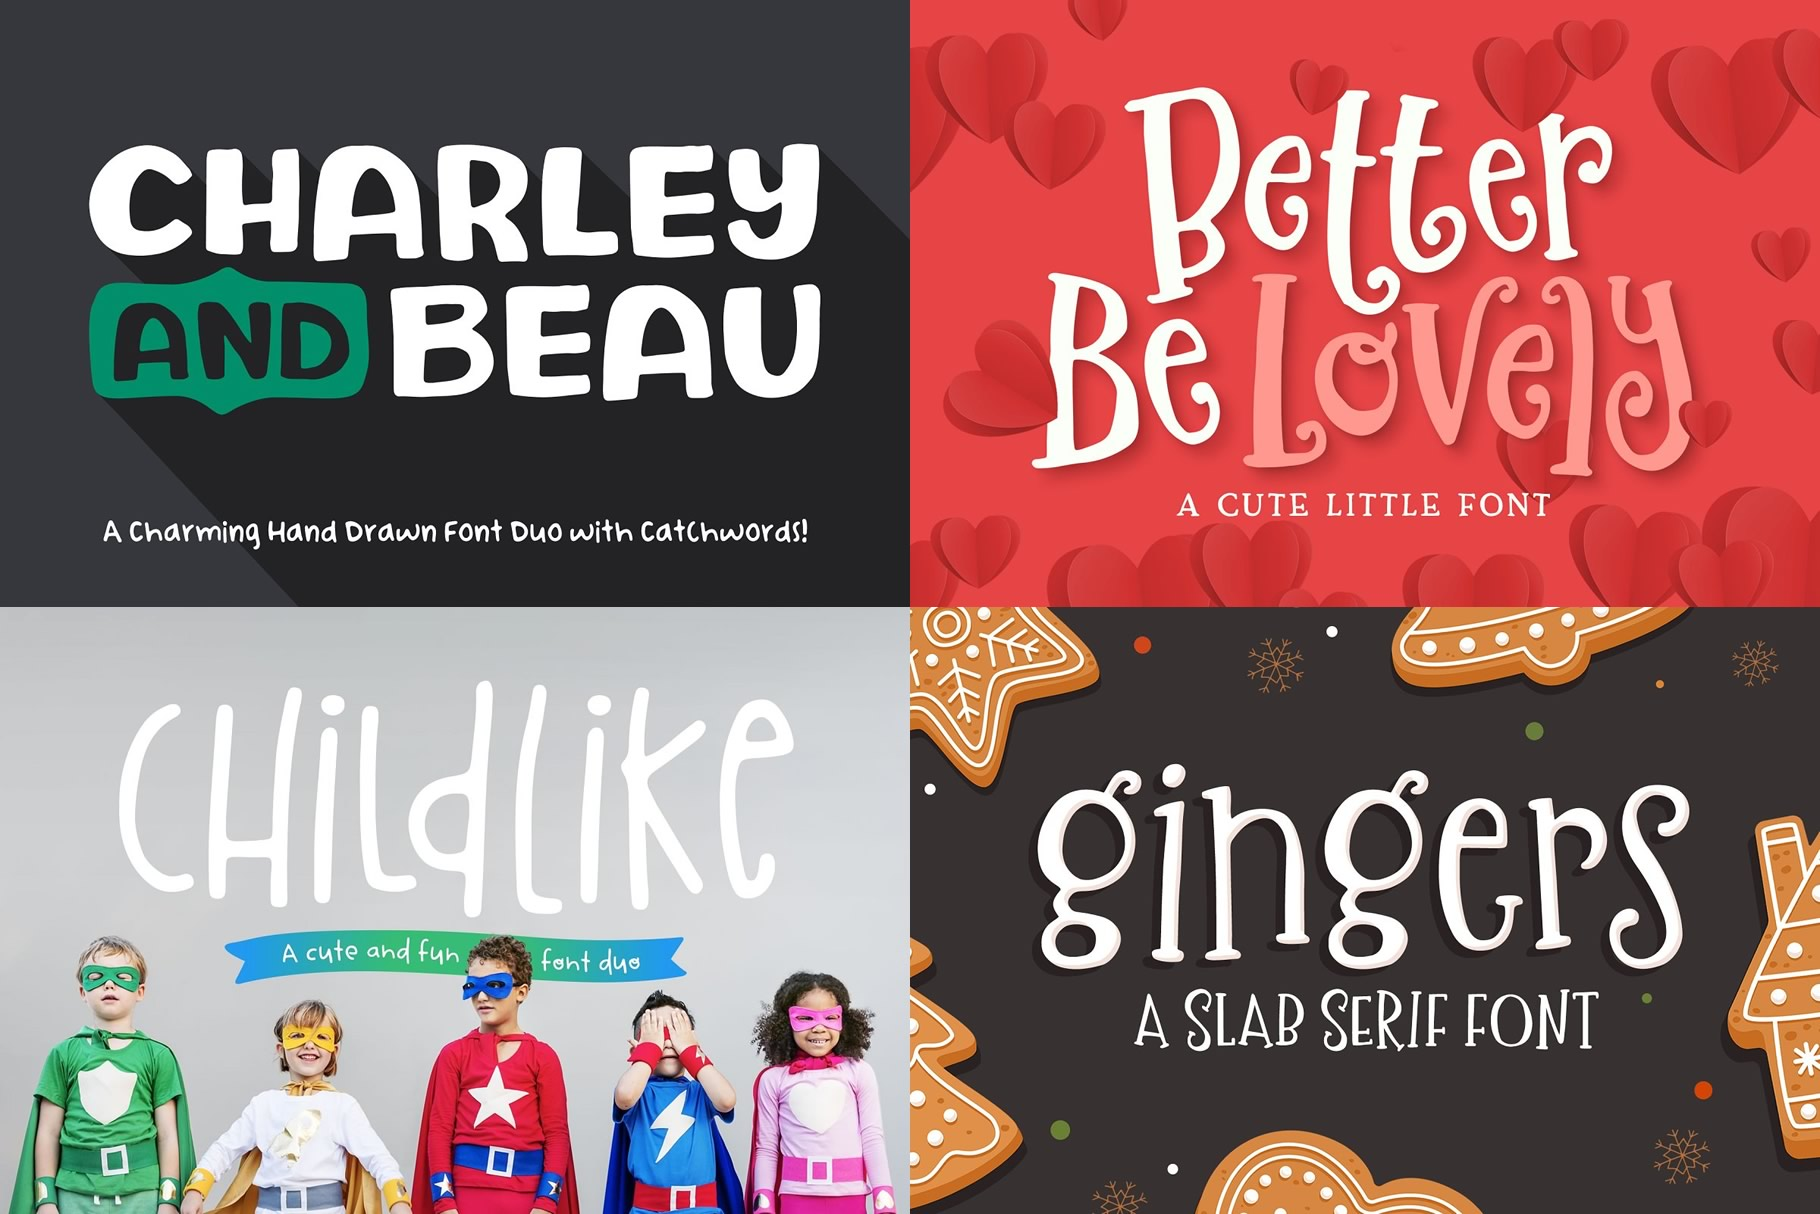 The Utterly Delightful Font Pack example image 2